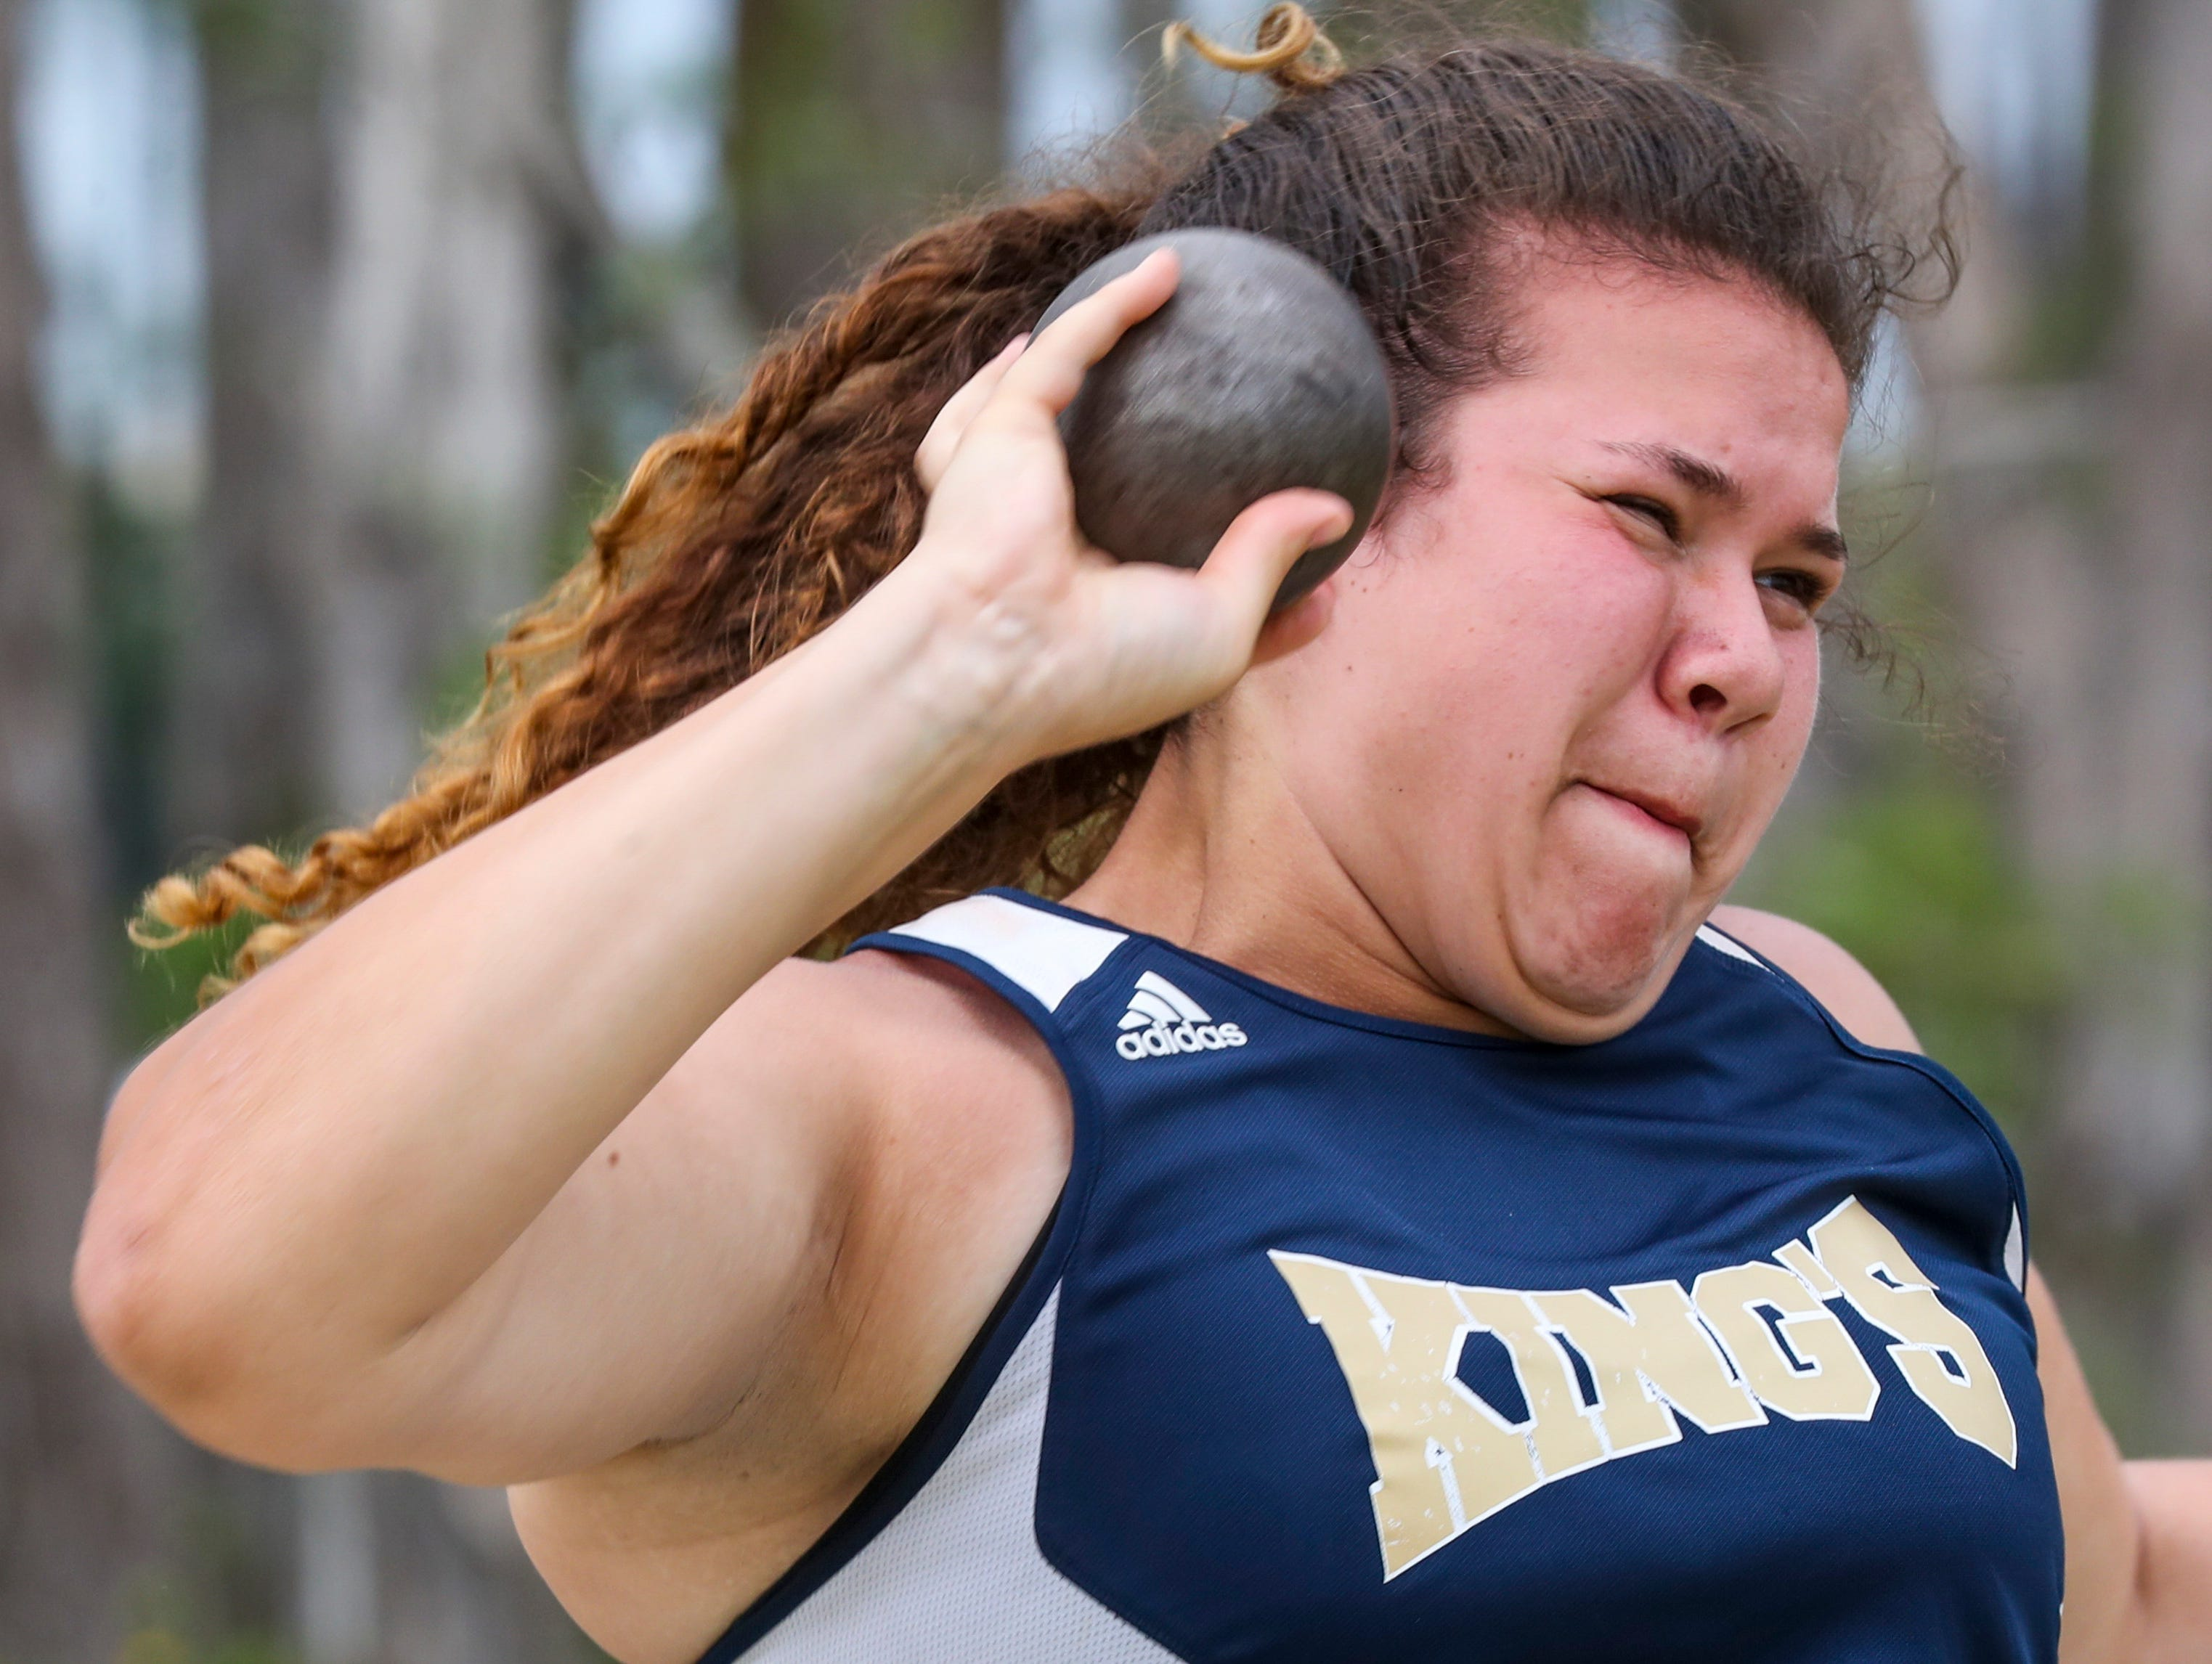 5th place, Trinity Hernandez